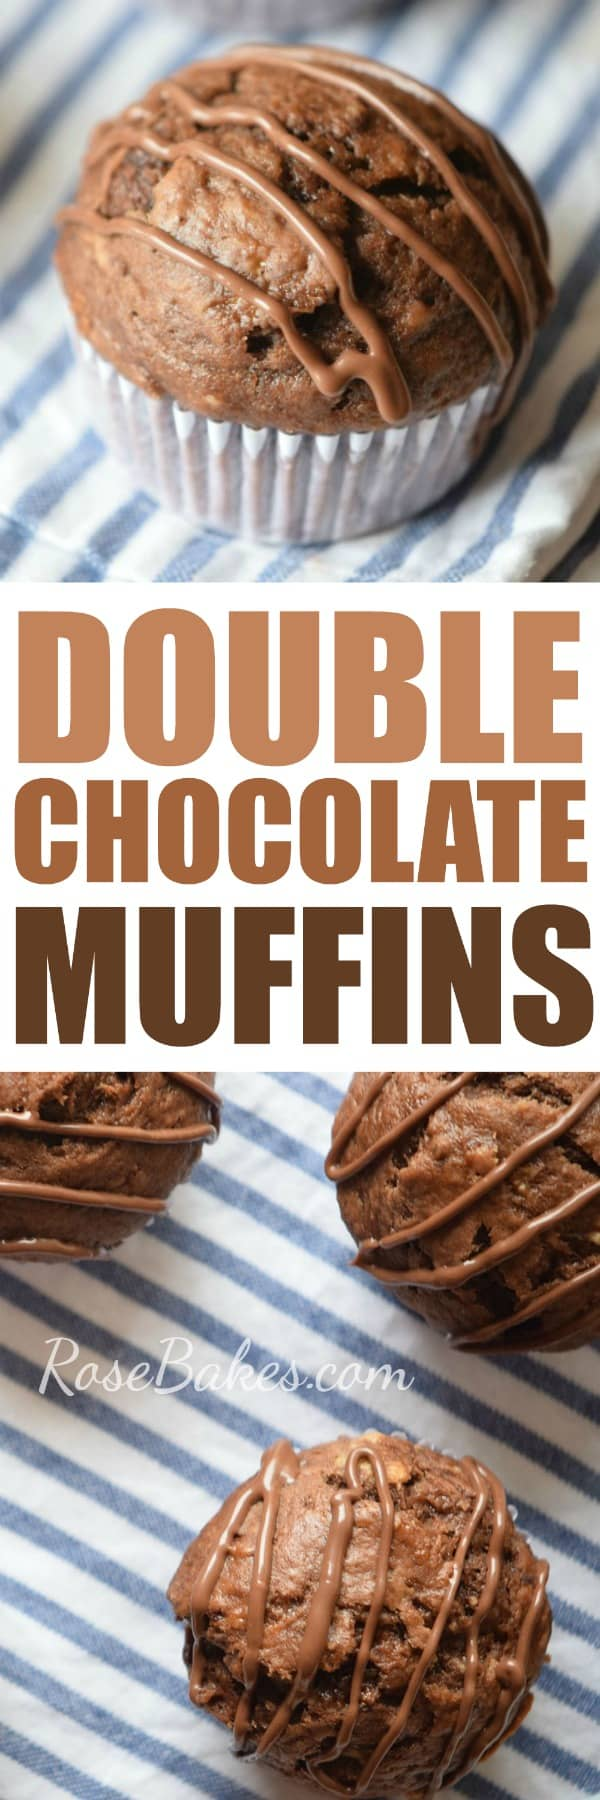 double-chocolate-muffins-from-scratch-by-rose-bakes